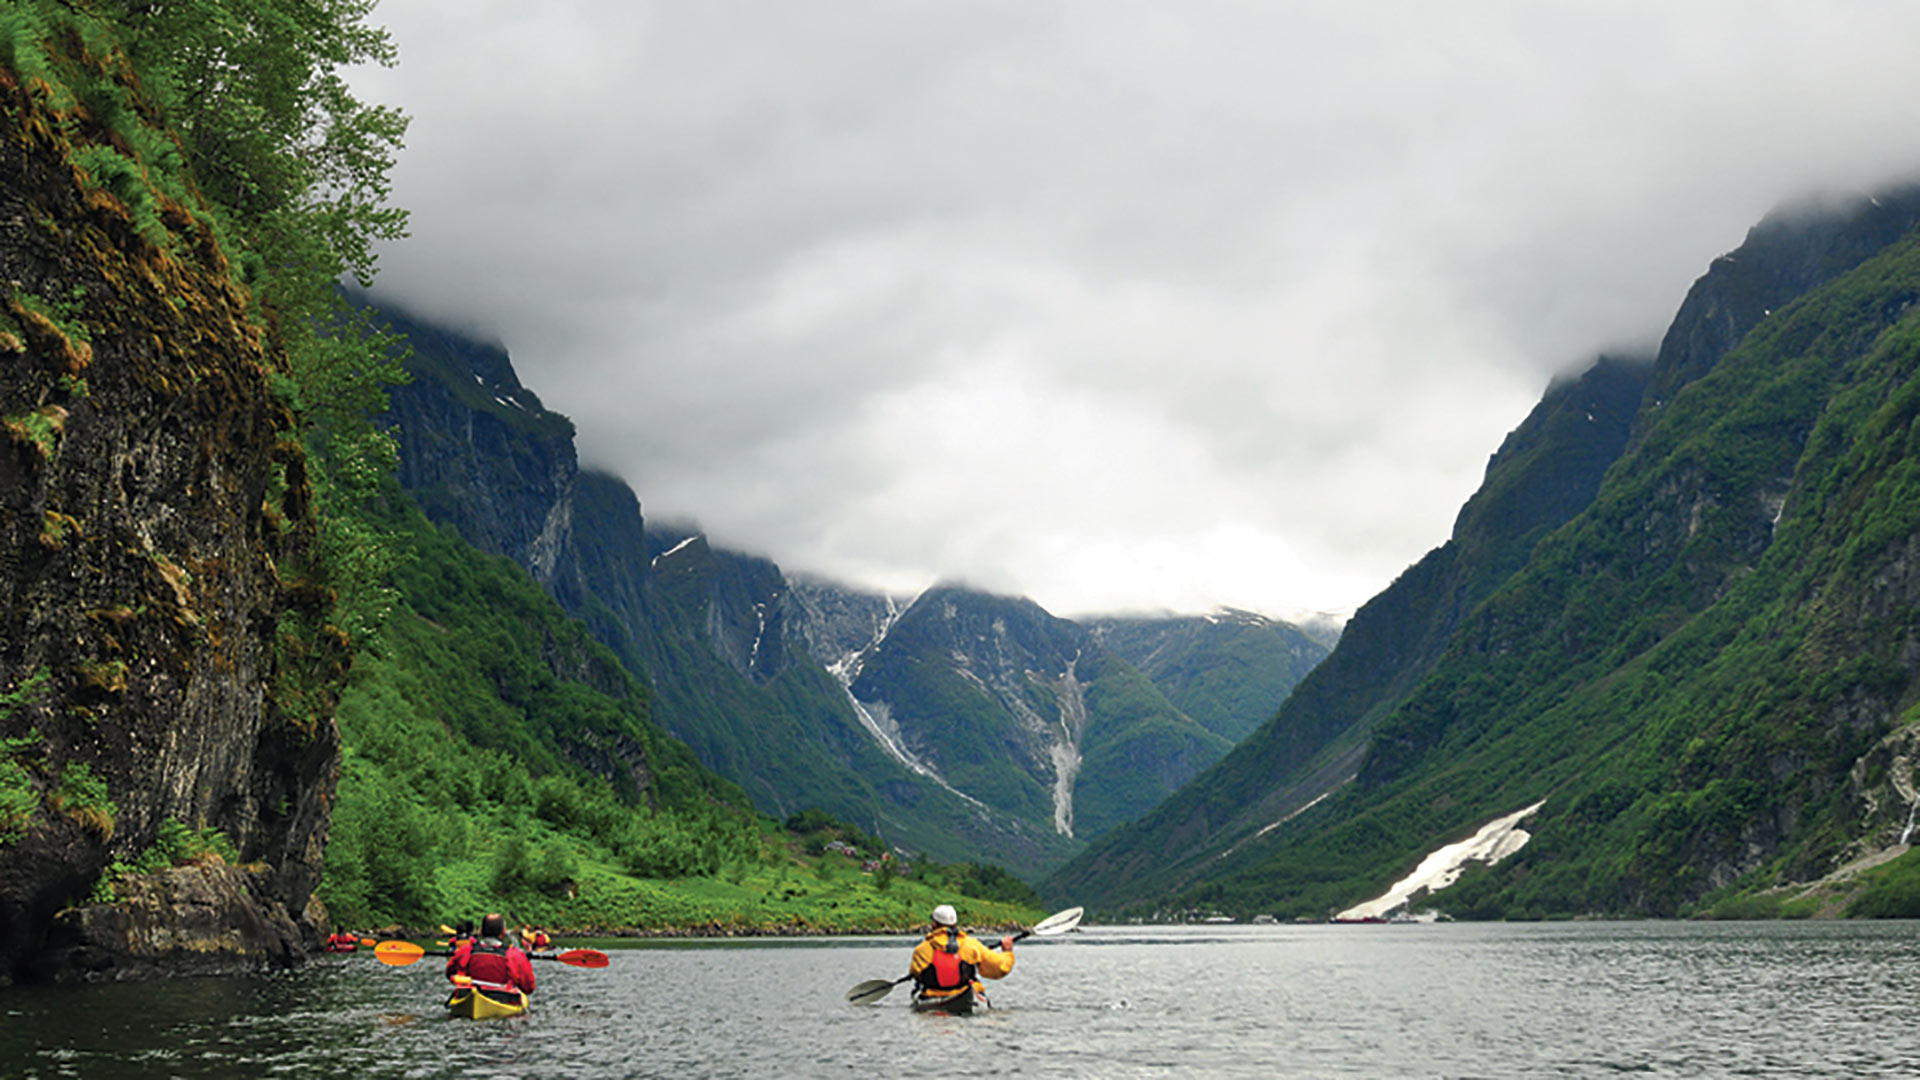 Persons paddle on the fjord.